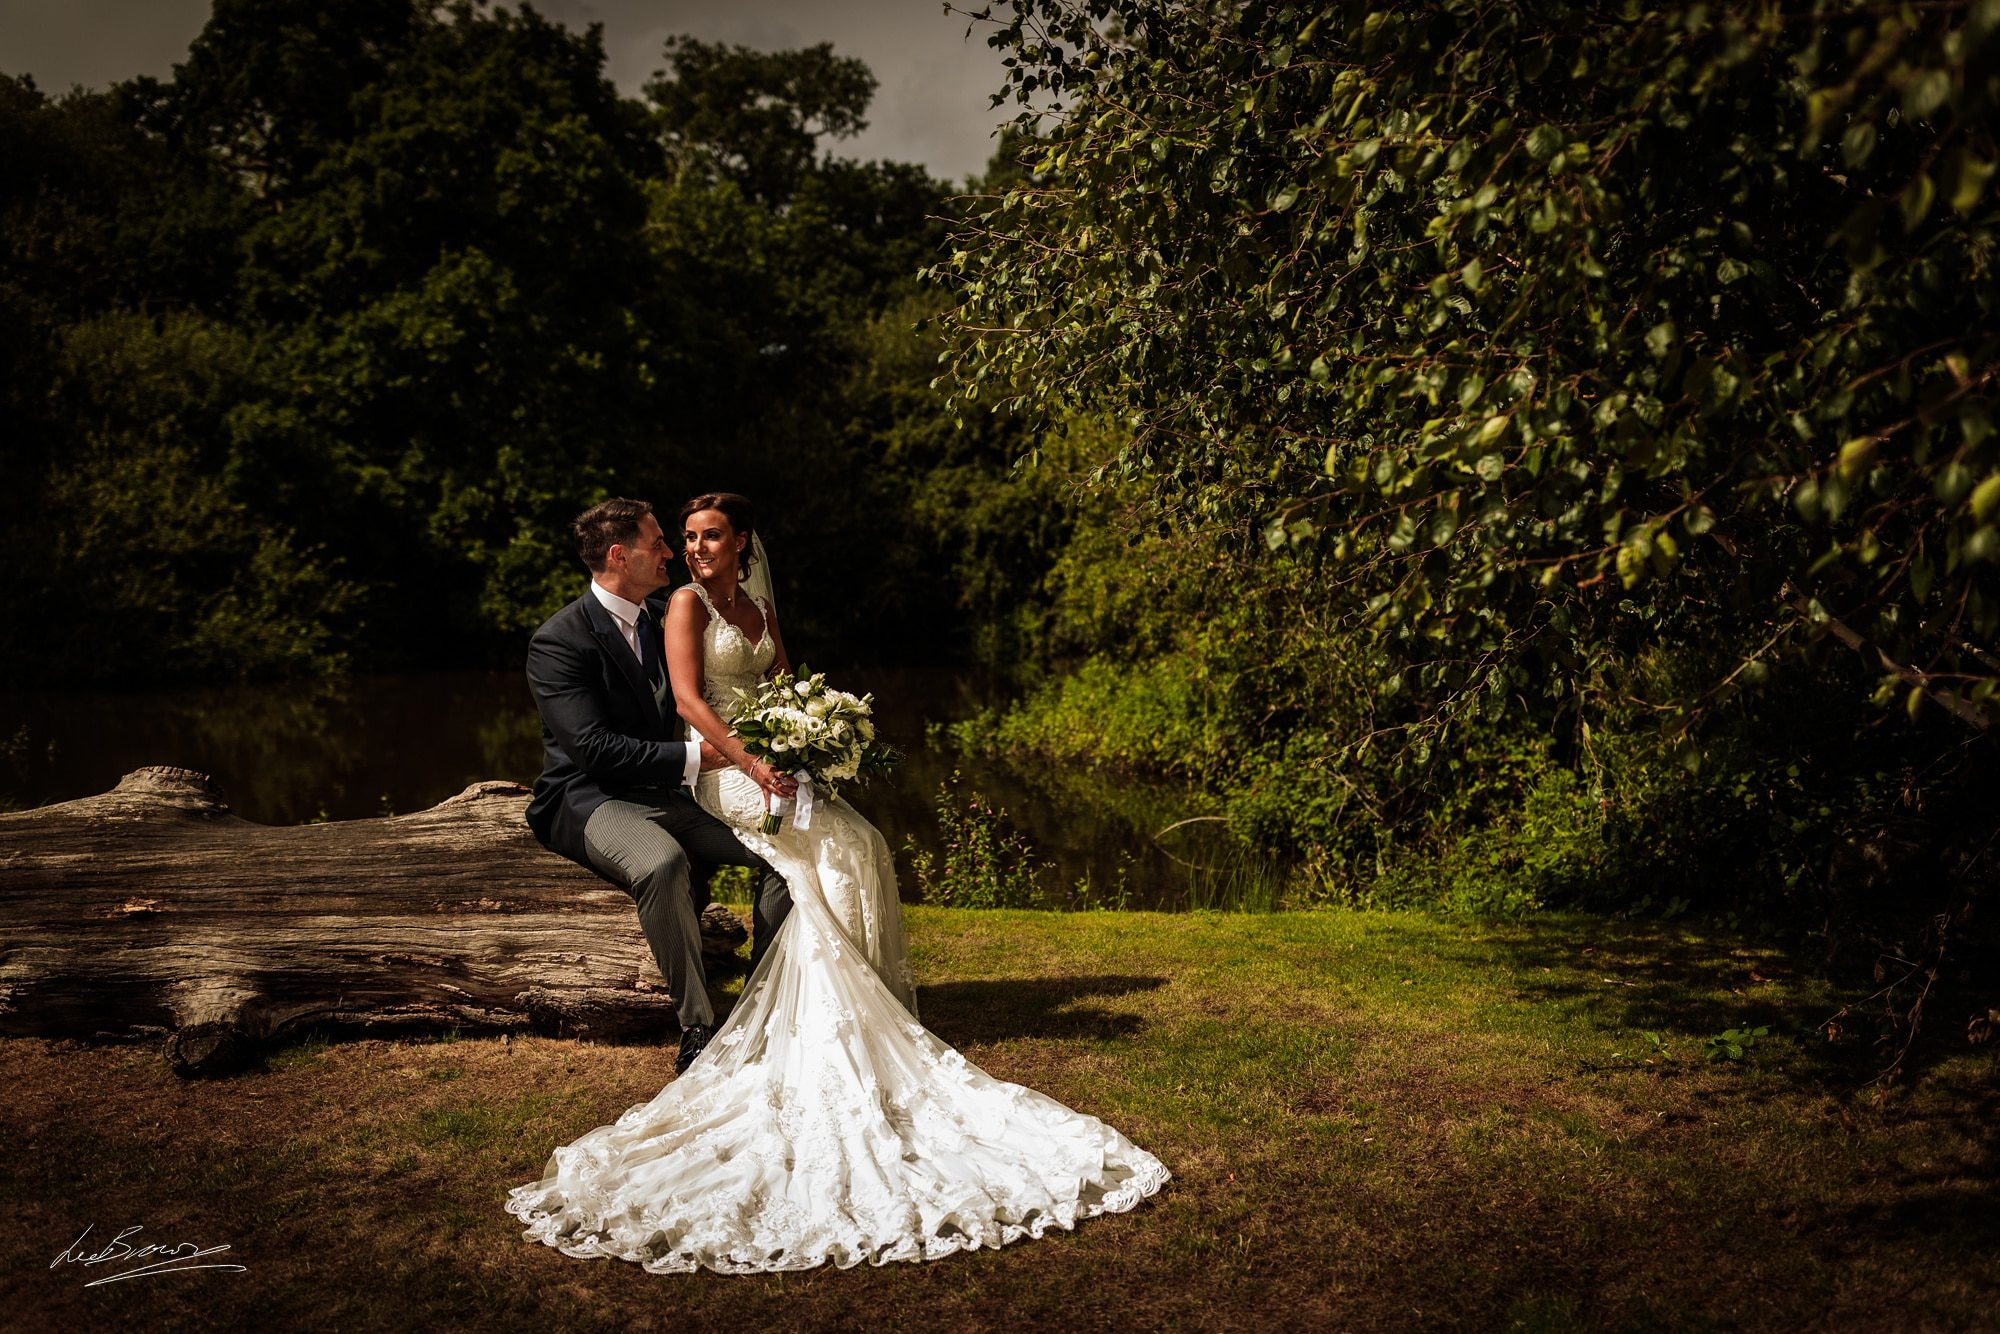 the bride sat on the grooms knee next to a pond